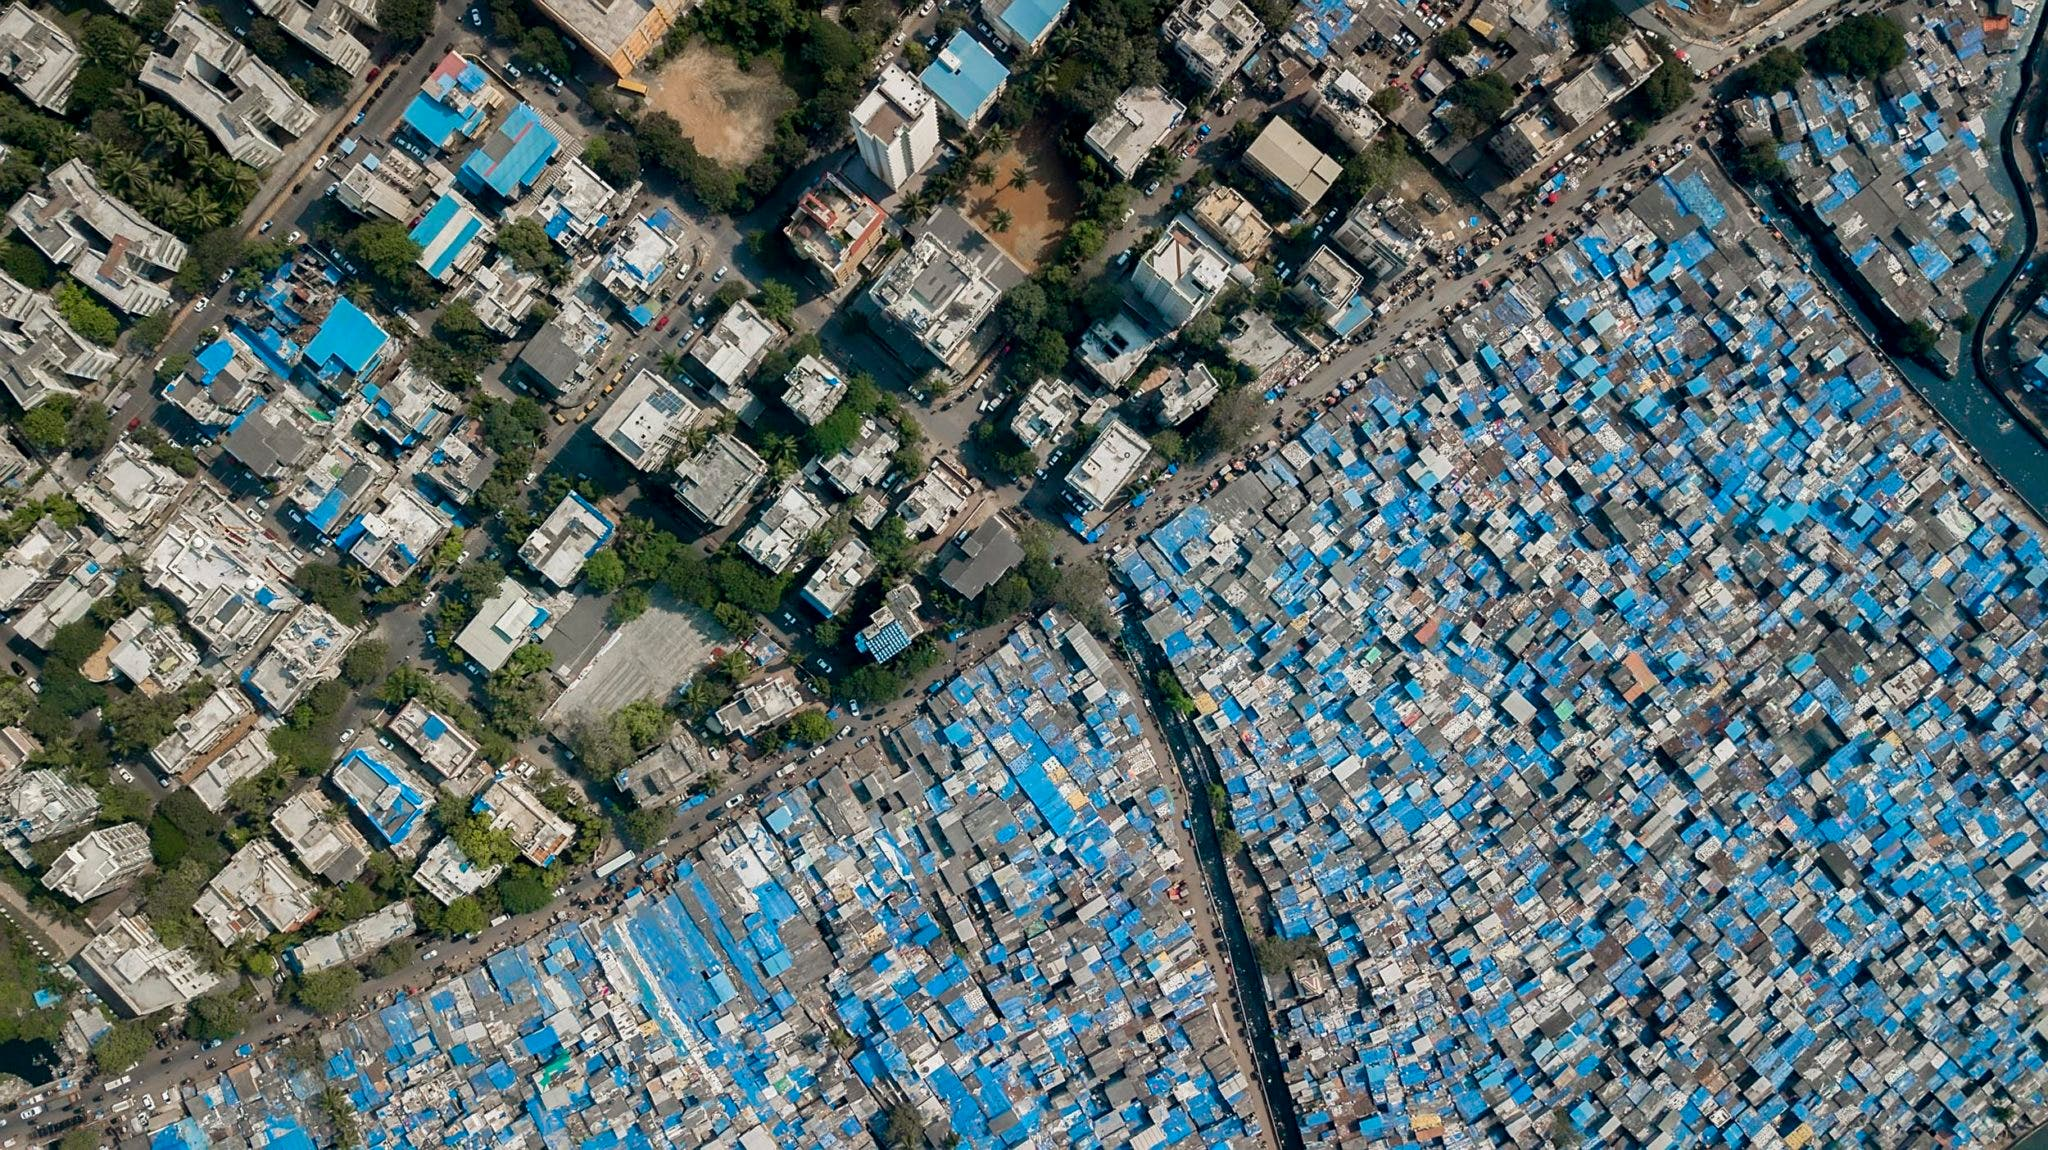 Johnny Miller Presents a Bird's Eye View of Social Inequality Across the Globe